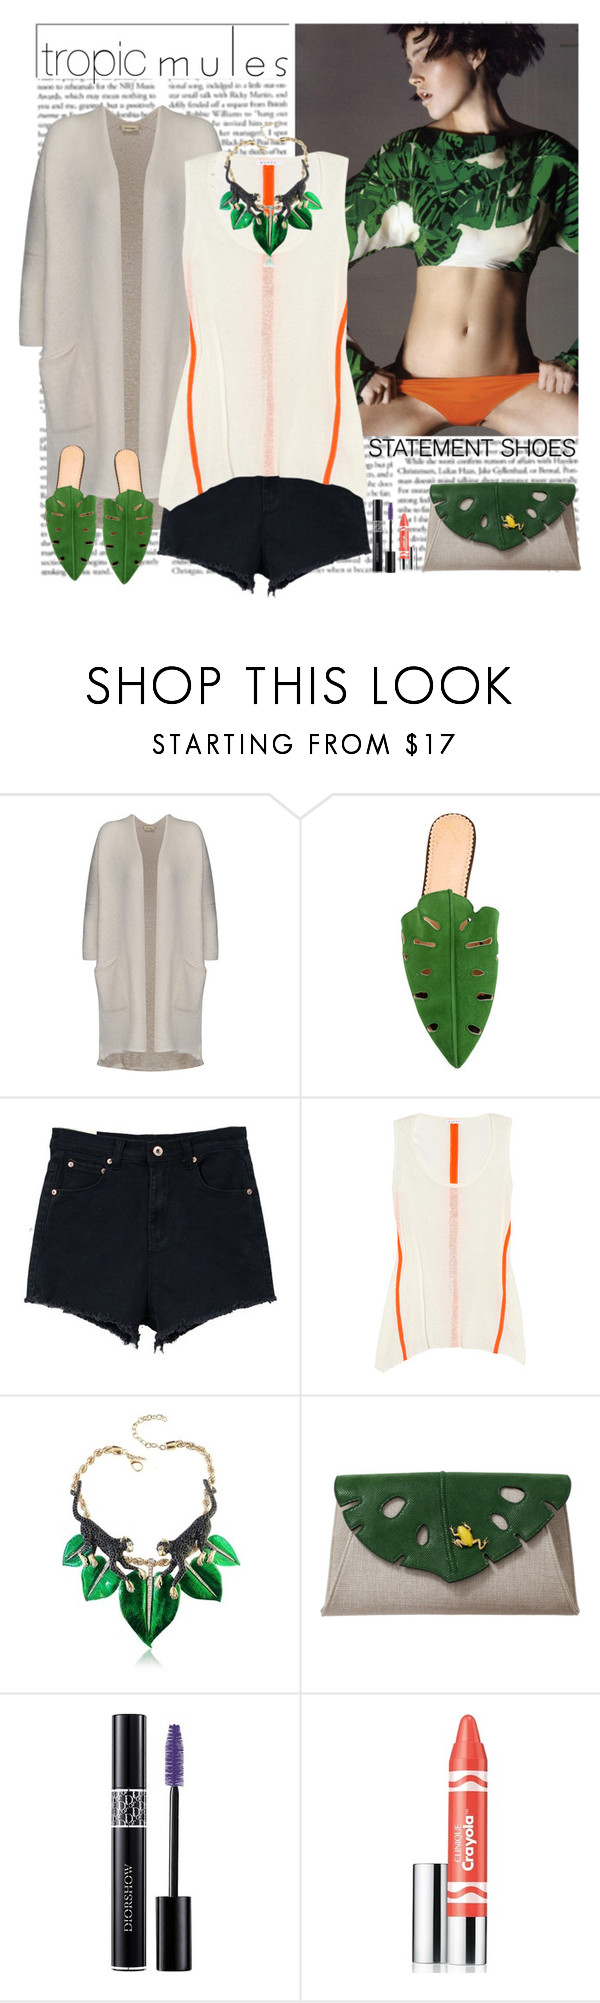 """""""mules"""" by helena99 ❤ liked on Polyvore featuring American Vintage, Charlotte Olympia, Retrò, Duffy, Roberto Cavalli, Christian Dior, Clinique, tropical, clutches and CharlotteOlympia"""